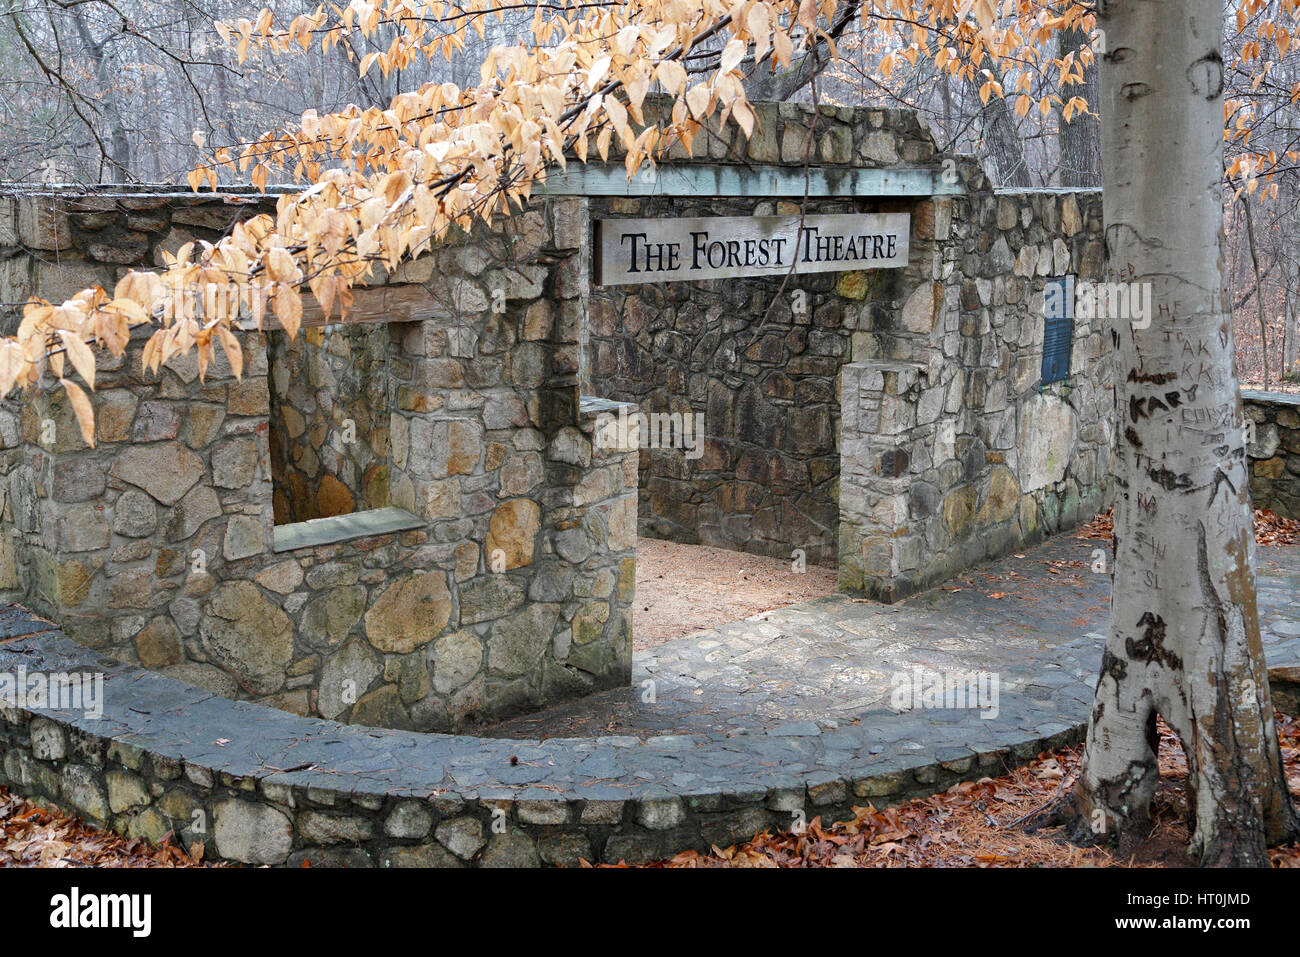 The Forest Theater, University of North Carolina, Chapel Hill, UNC - Stock Image